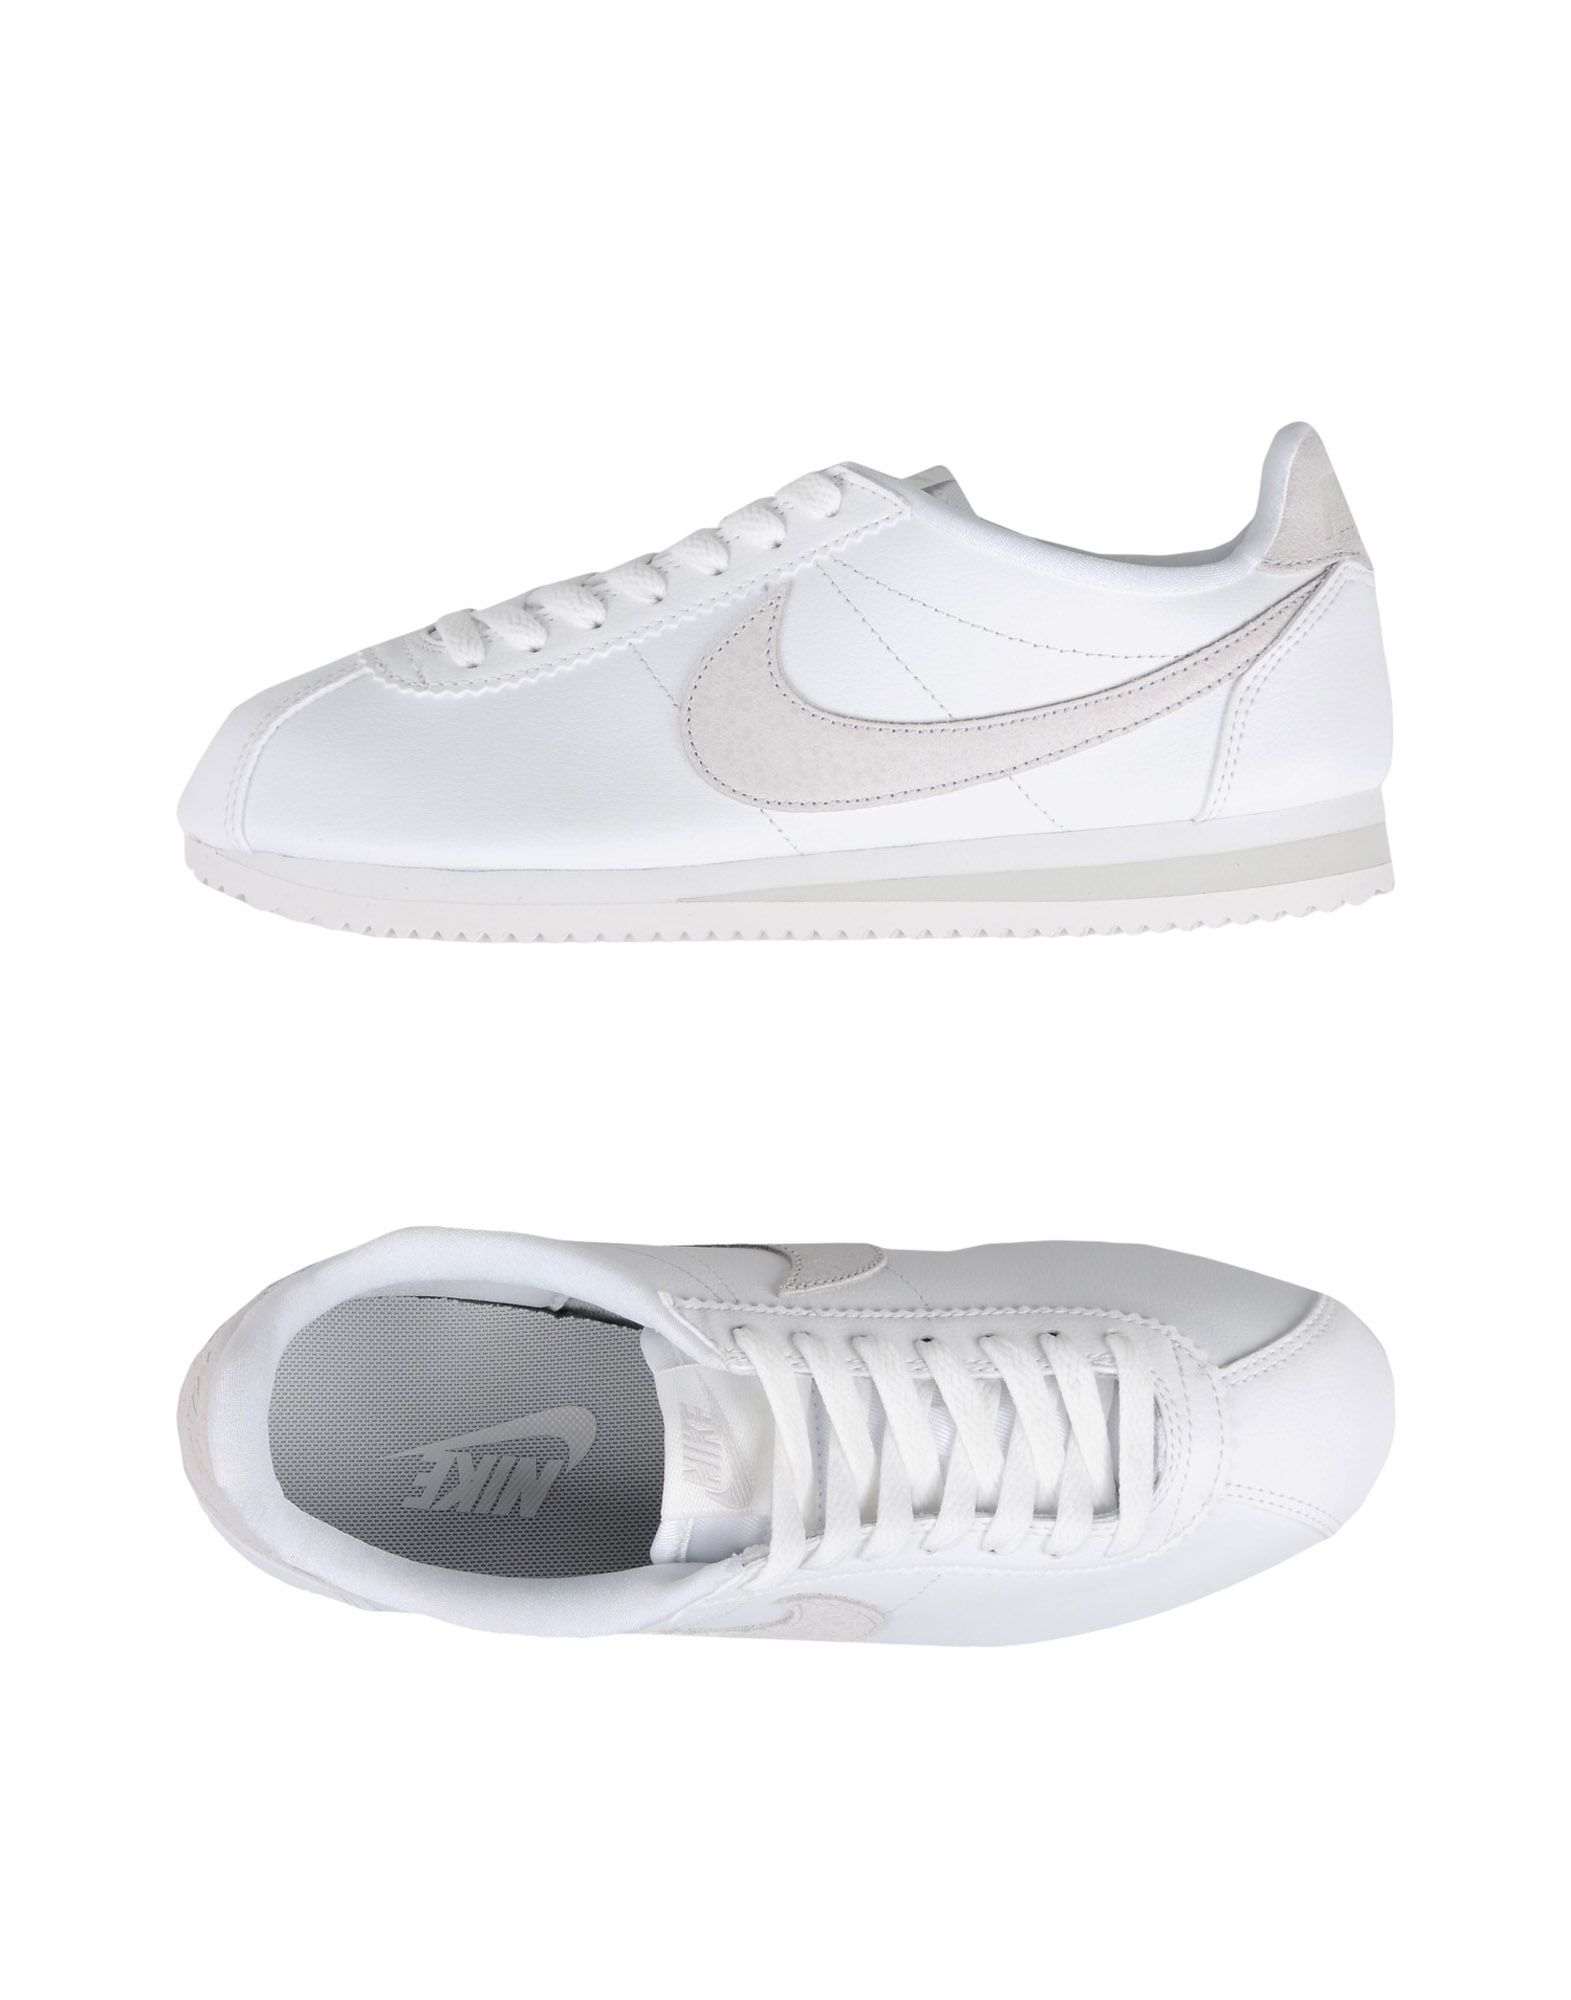 Sneakers Nike  Classic Cortez Premium - Femme - Sneakers Nike sur